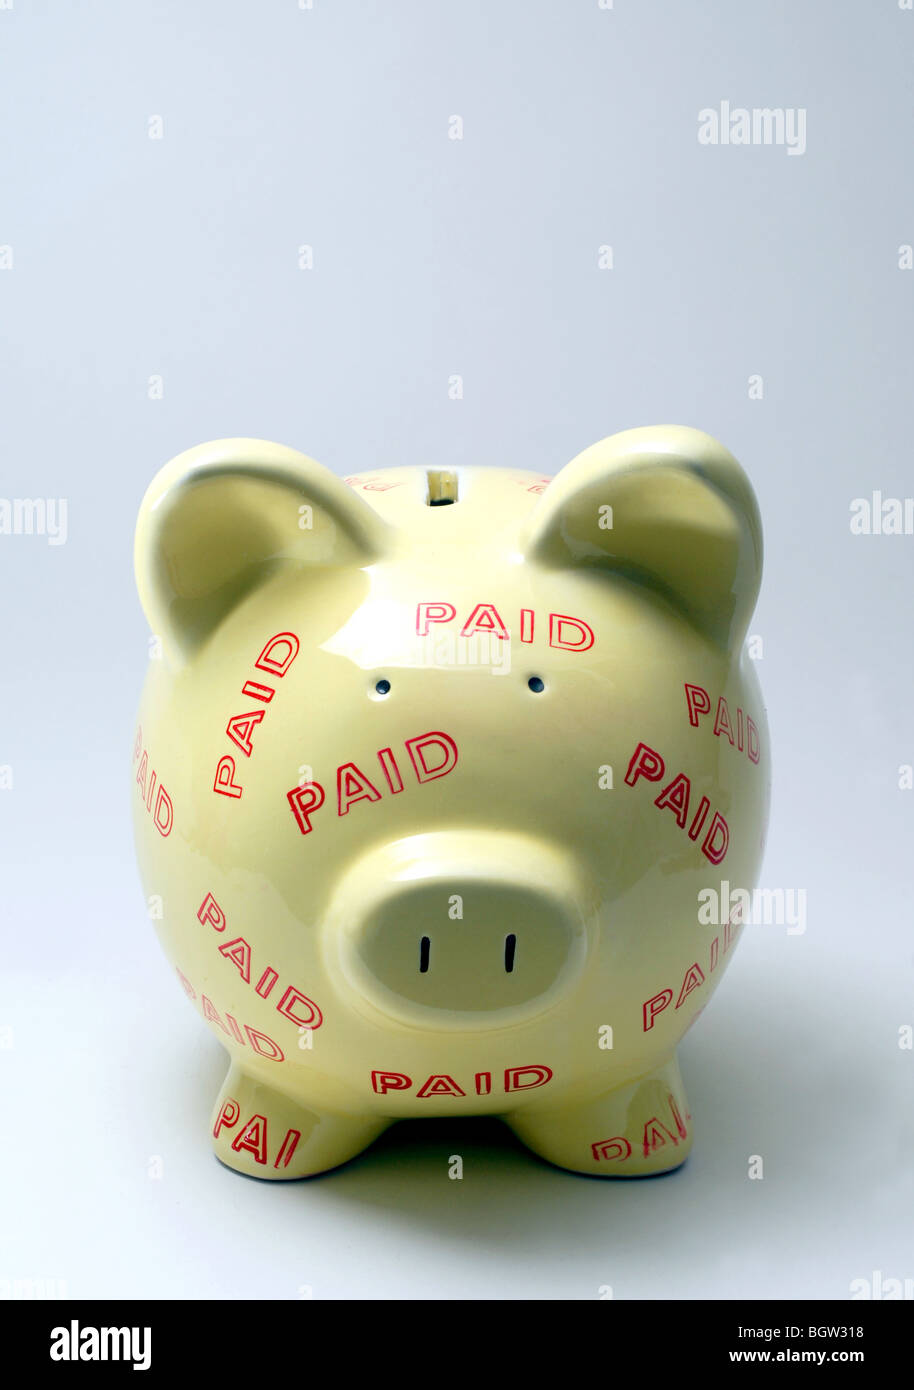 PIGGYBANK COVERED WITH 'PAID' STAMPS RE FINANCIAL DEBT,DEBTS,LOAN,LOANS,PAY,OFF,PAID. THE ECONOMY RECESSION - Stock Image